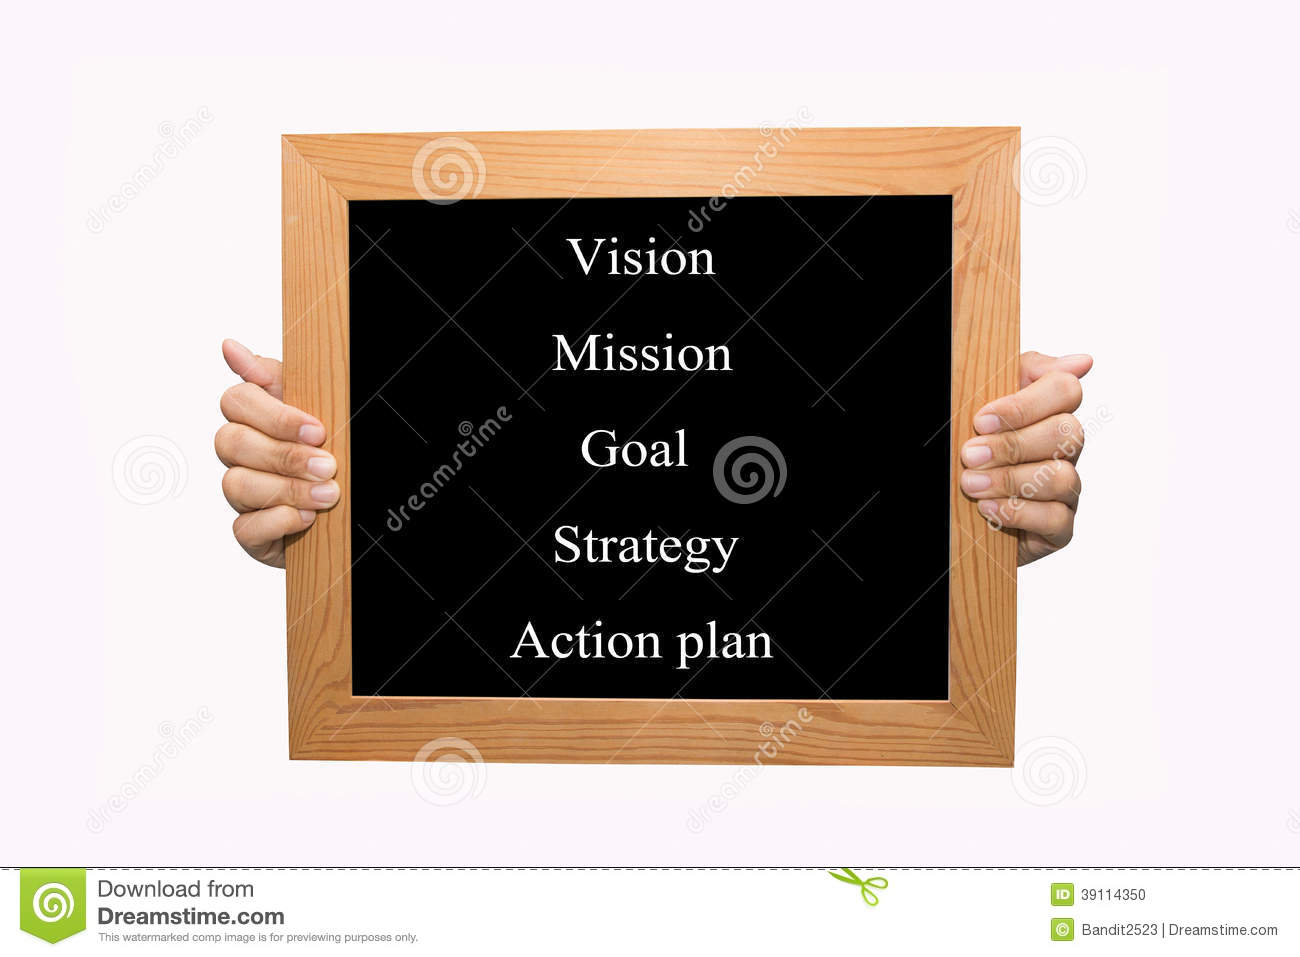 nestle mission vision goals and strategic planning How nestle icecream strategy was built up  health and wellness company  and its mission statement is good  from 1991, they puttheir plan in motion  with the goal to secure nestlé a considerable global market share.